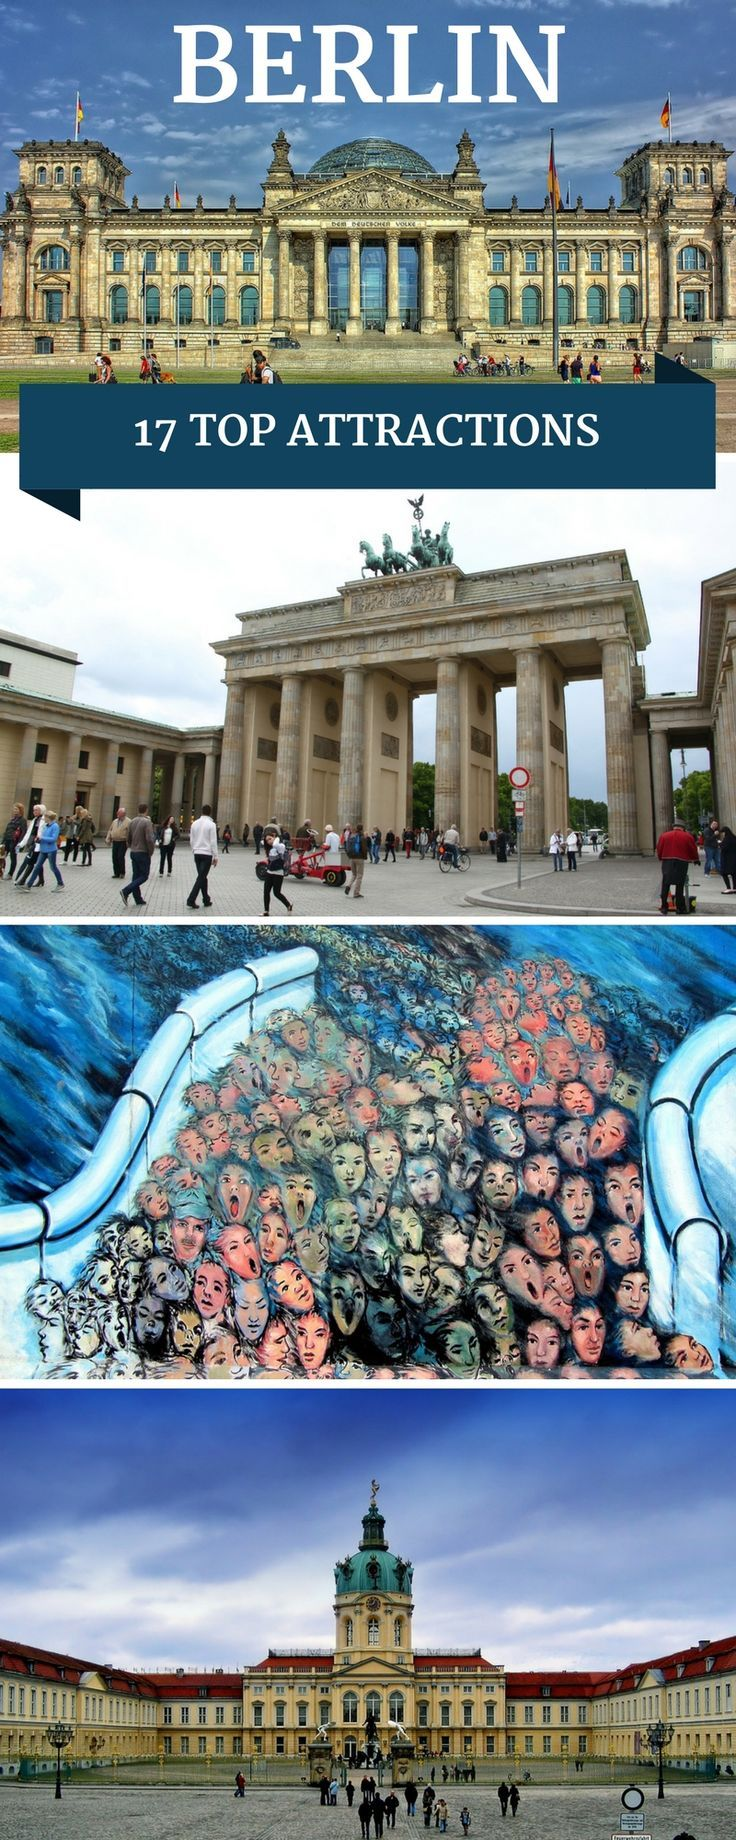 17 top attractions in Berlin to include on your travel itinerary on your first visit